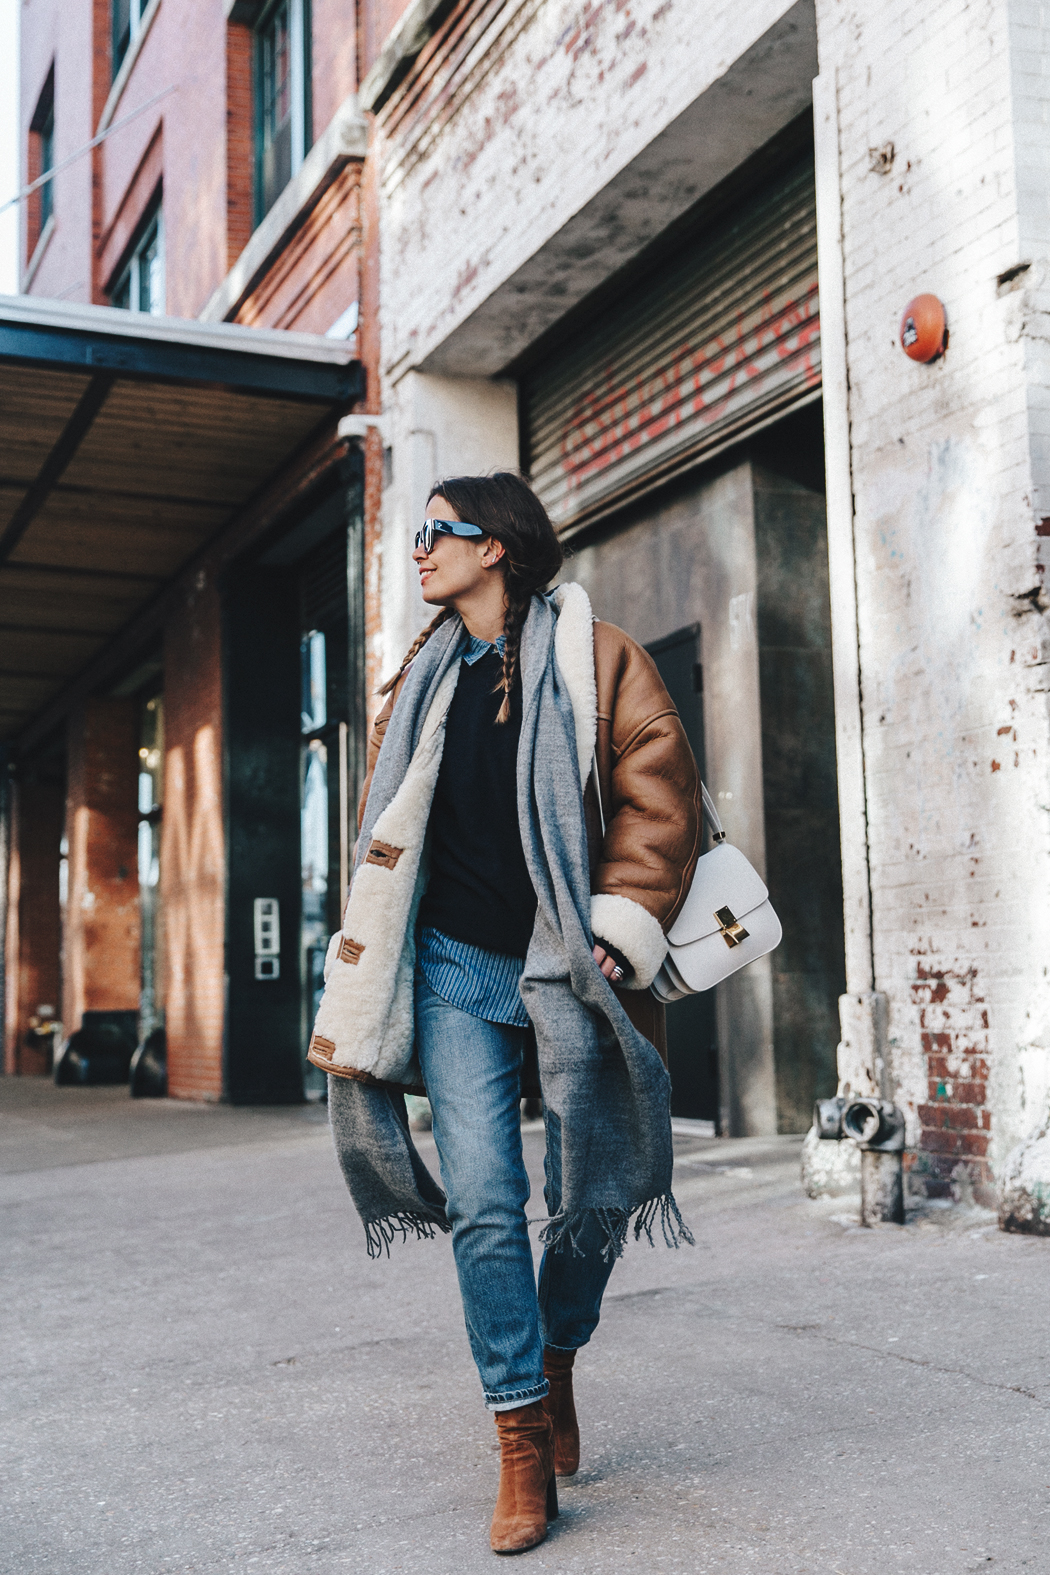 Denim_Lover-Topshop_Jeans-Vintage_Coat-Grey_Scarf-Brown_Booties-Navy_Sweayer-Denim_Shirt-Braids-NYFW-New_York_Fashion_Week-Street_style-Celine_Bag-Vestiaire_Collective-51